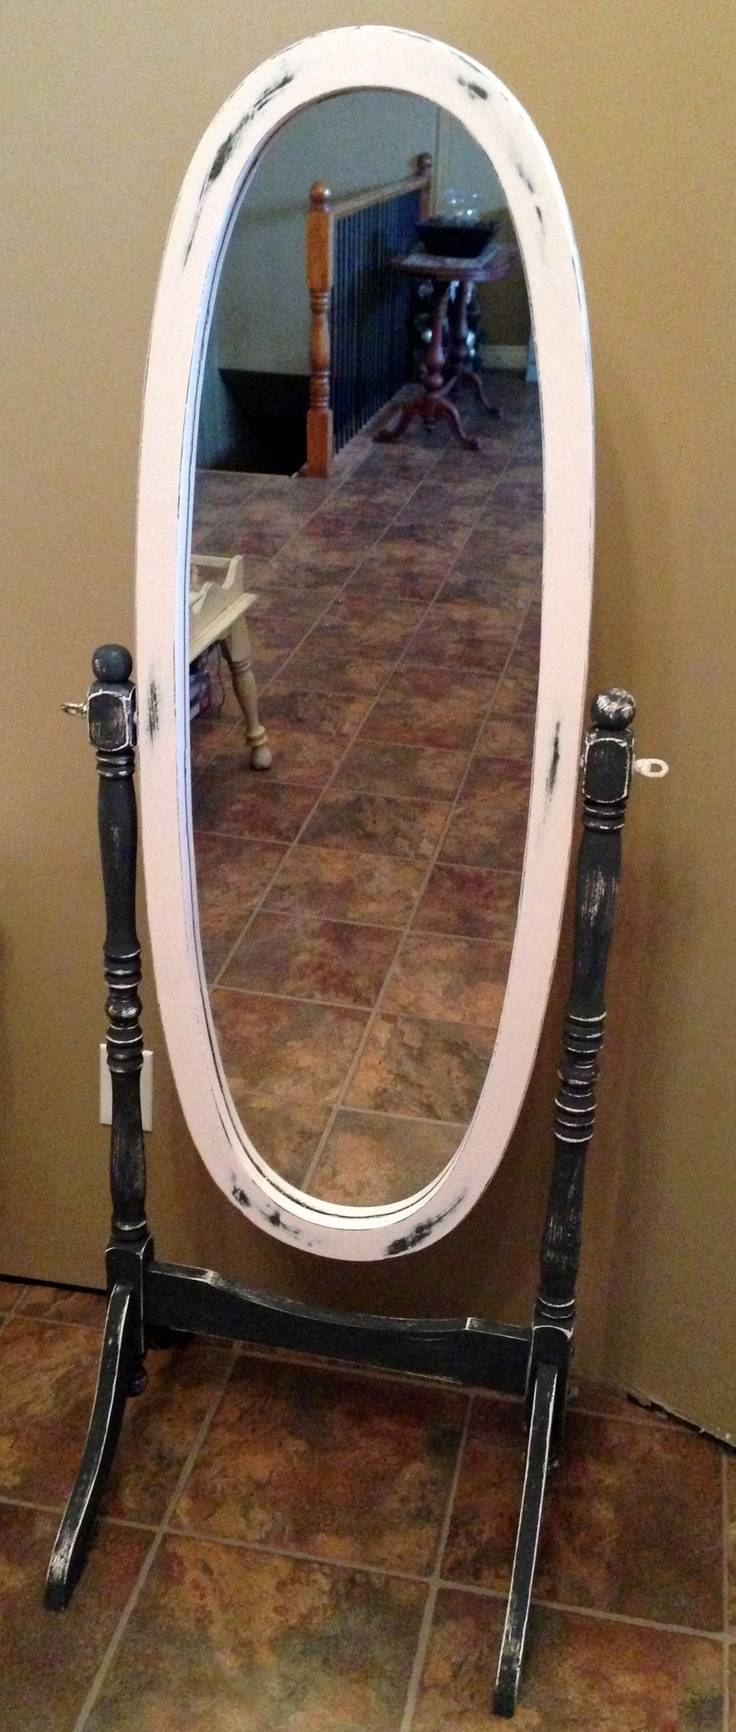 431 Best Mirrors / New And Old Love Them Images On Pinterest With Free Standing Long Mirrors (View 1 of 15)